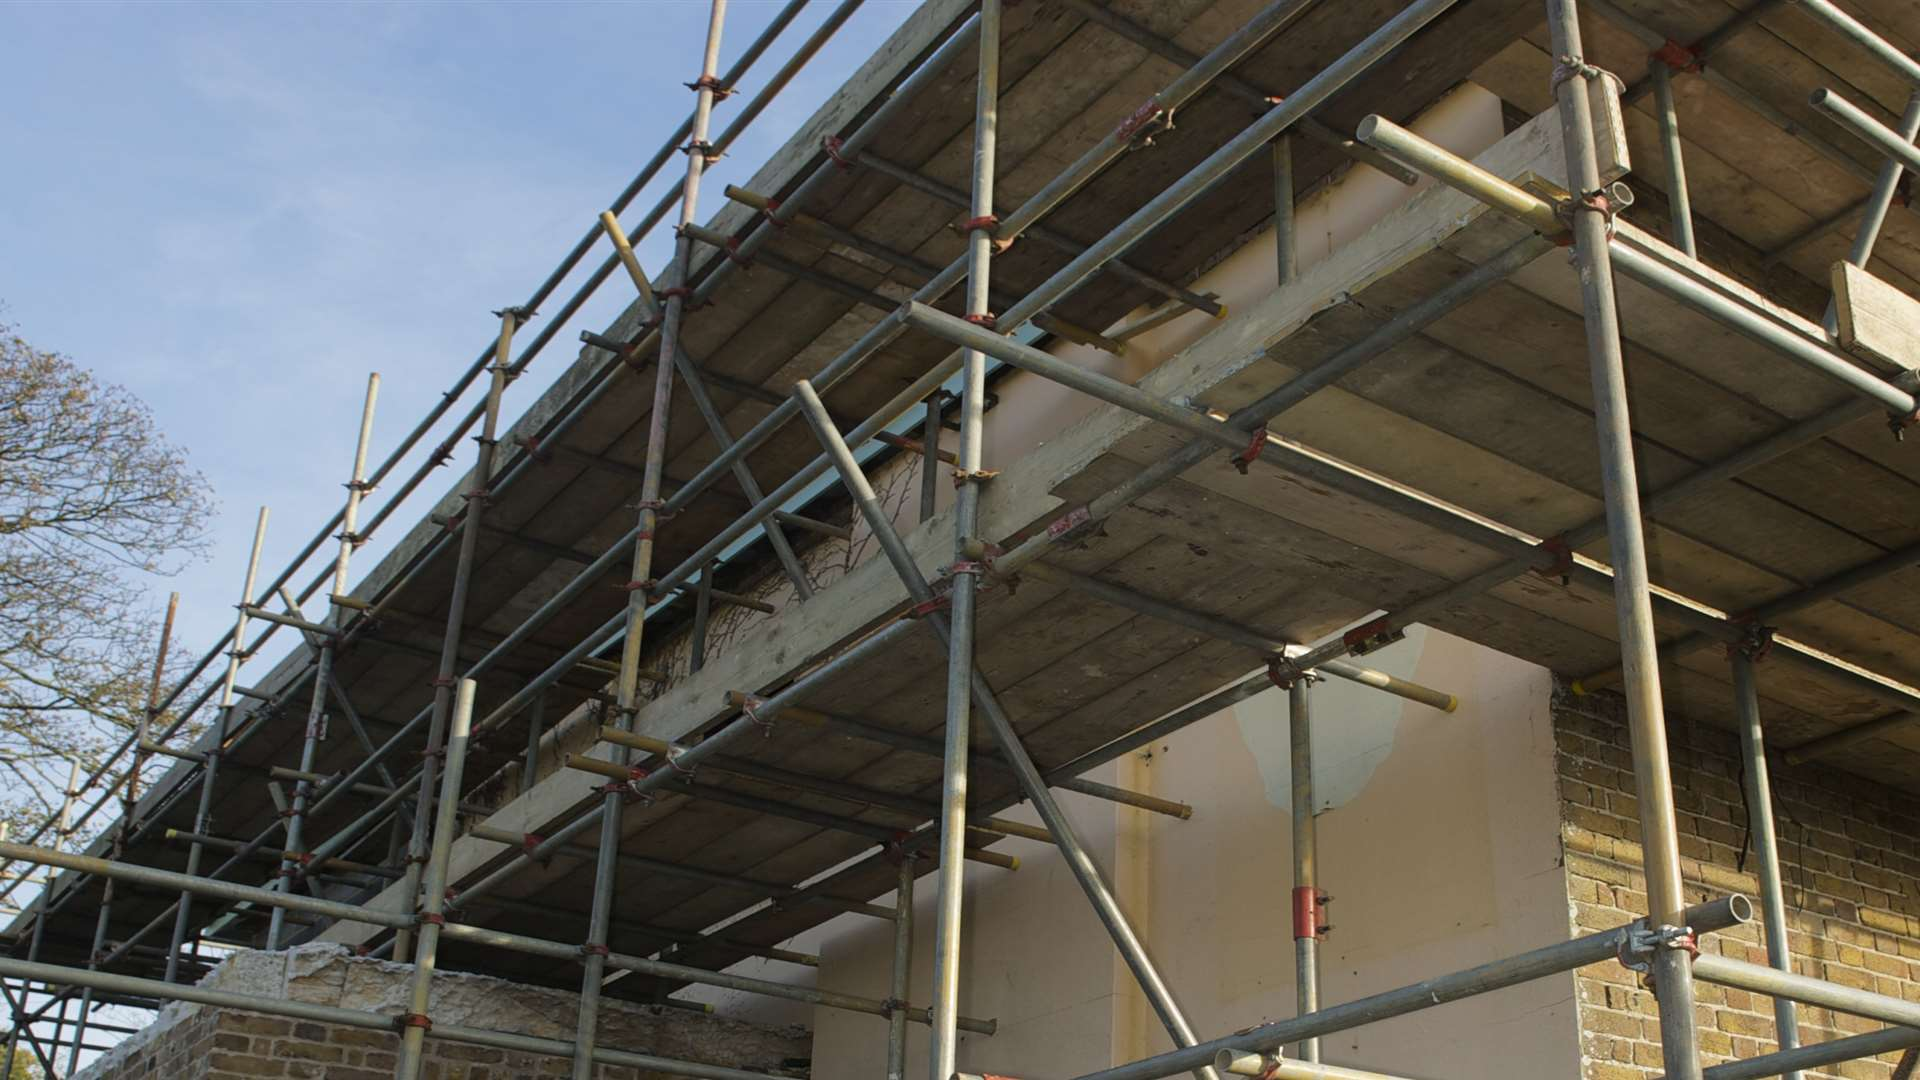 Scaffolding worth £4,000 was taken according to police. Stock picture